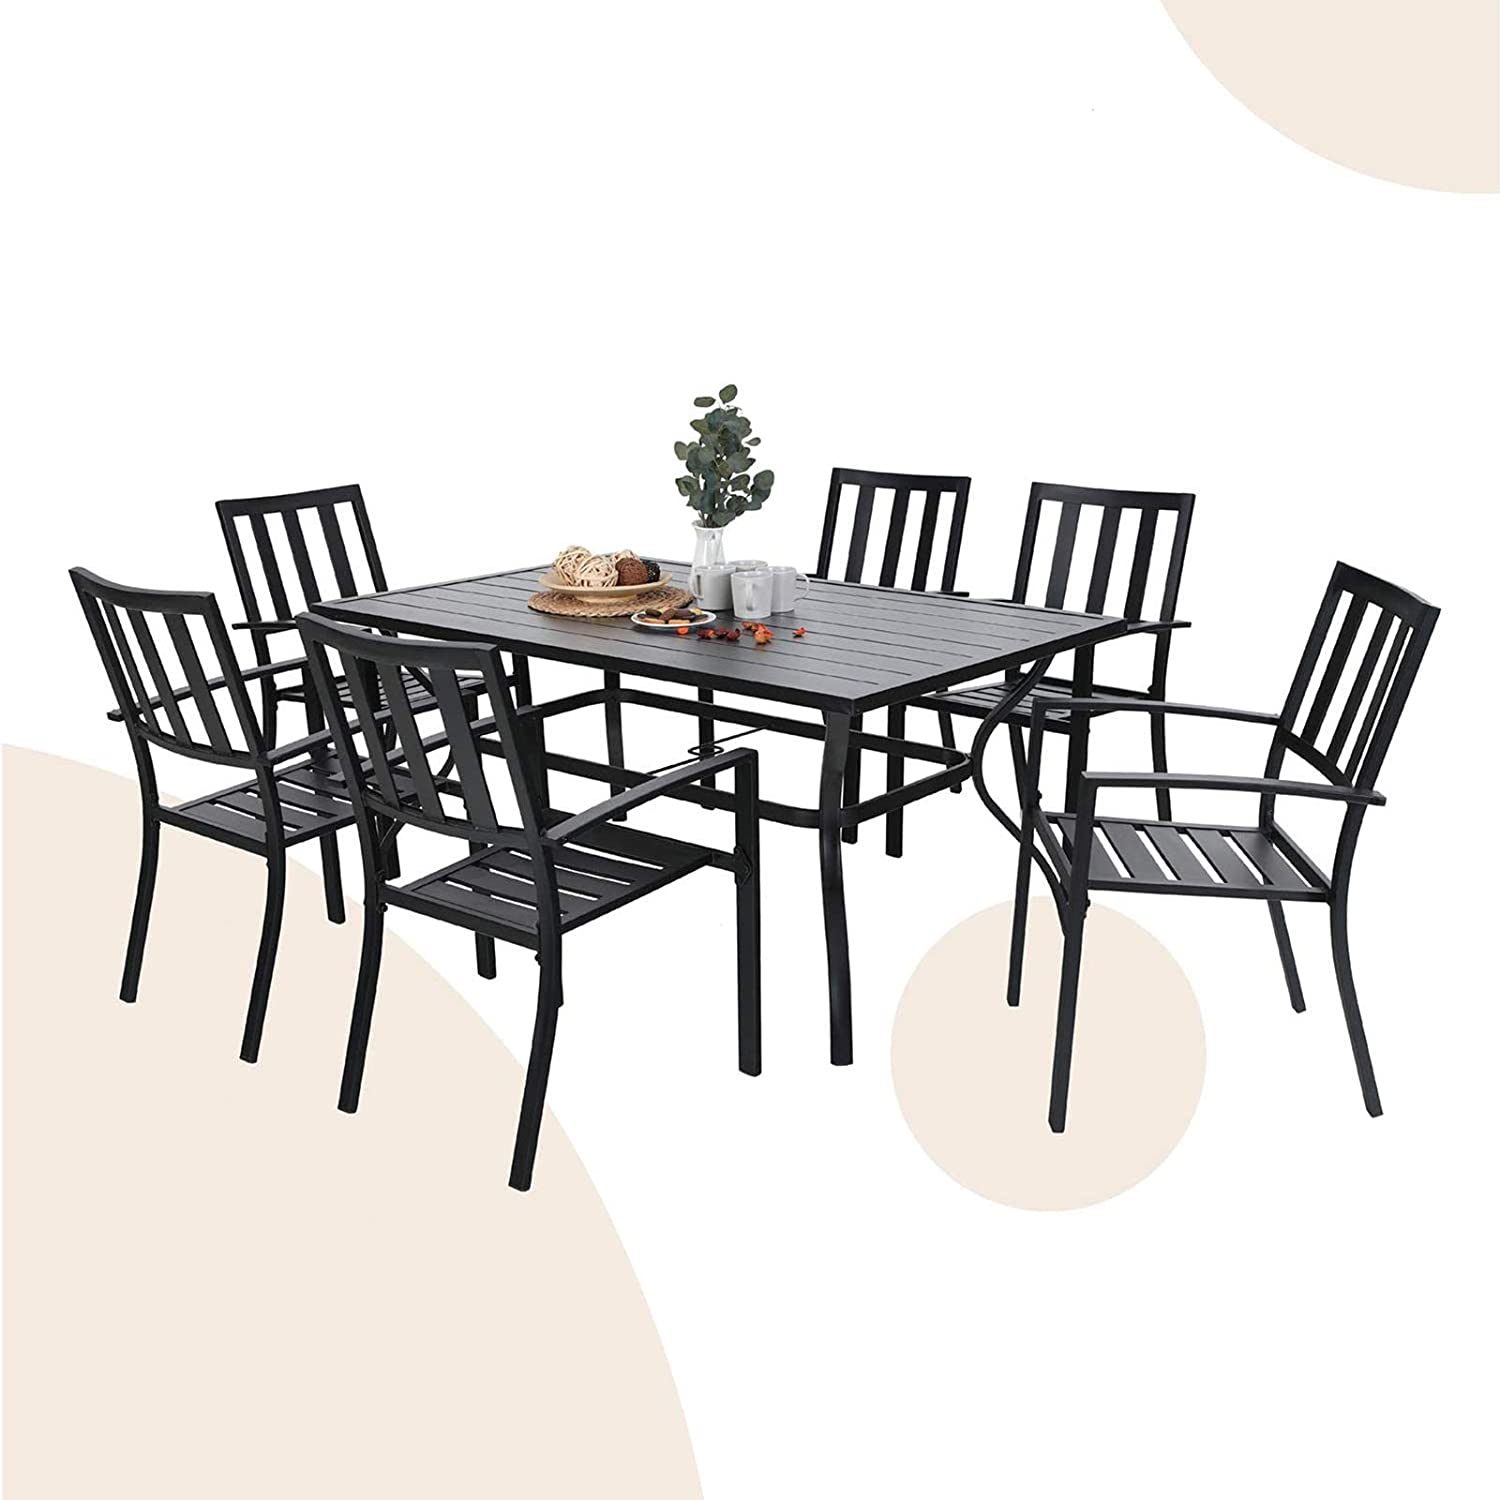 """MFSTUDIO 7-Piece Metal Outdoor Patio Dining Bistro Set with 6 Striped Armrest Chairs and Steel Frame Slat Larger Rectangular Table, 60"""" x 38""""x28"""" Table and 6 Backyard Garden Chairs-Black"""